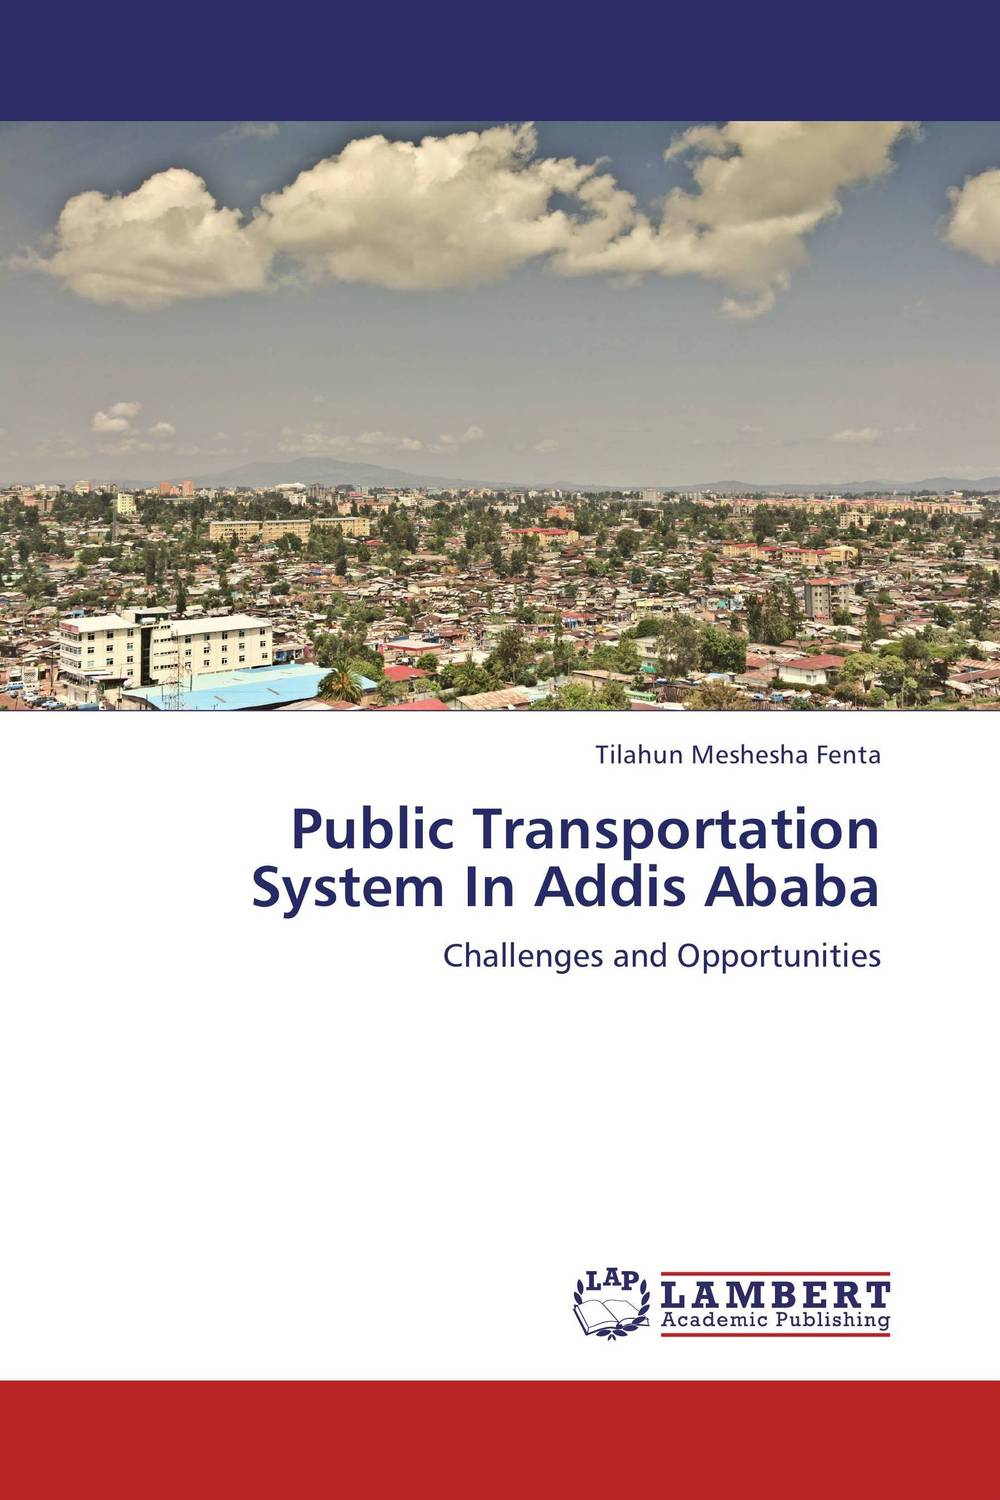 Public Transportation System In Addis Ababa study of the urban drainage system in addis ababa